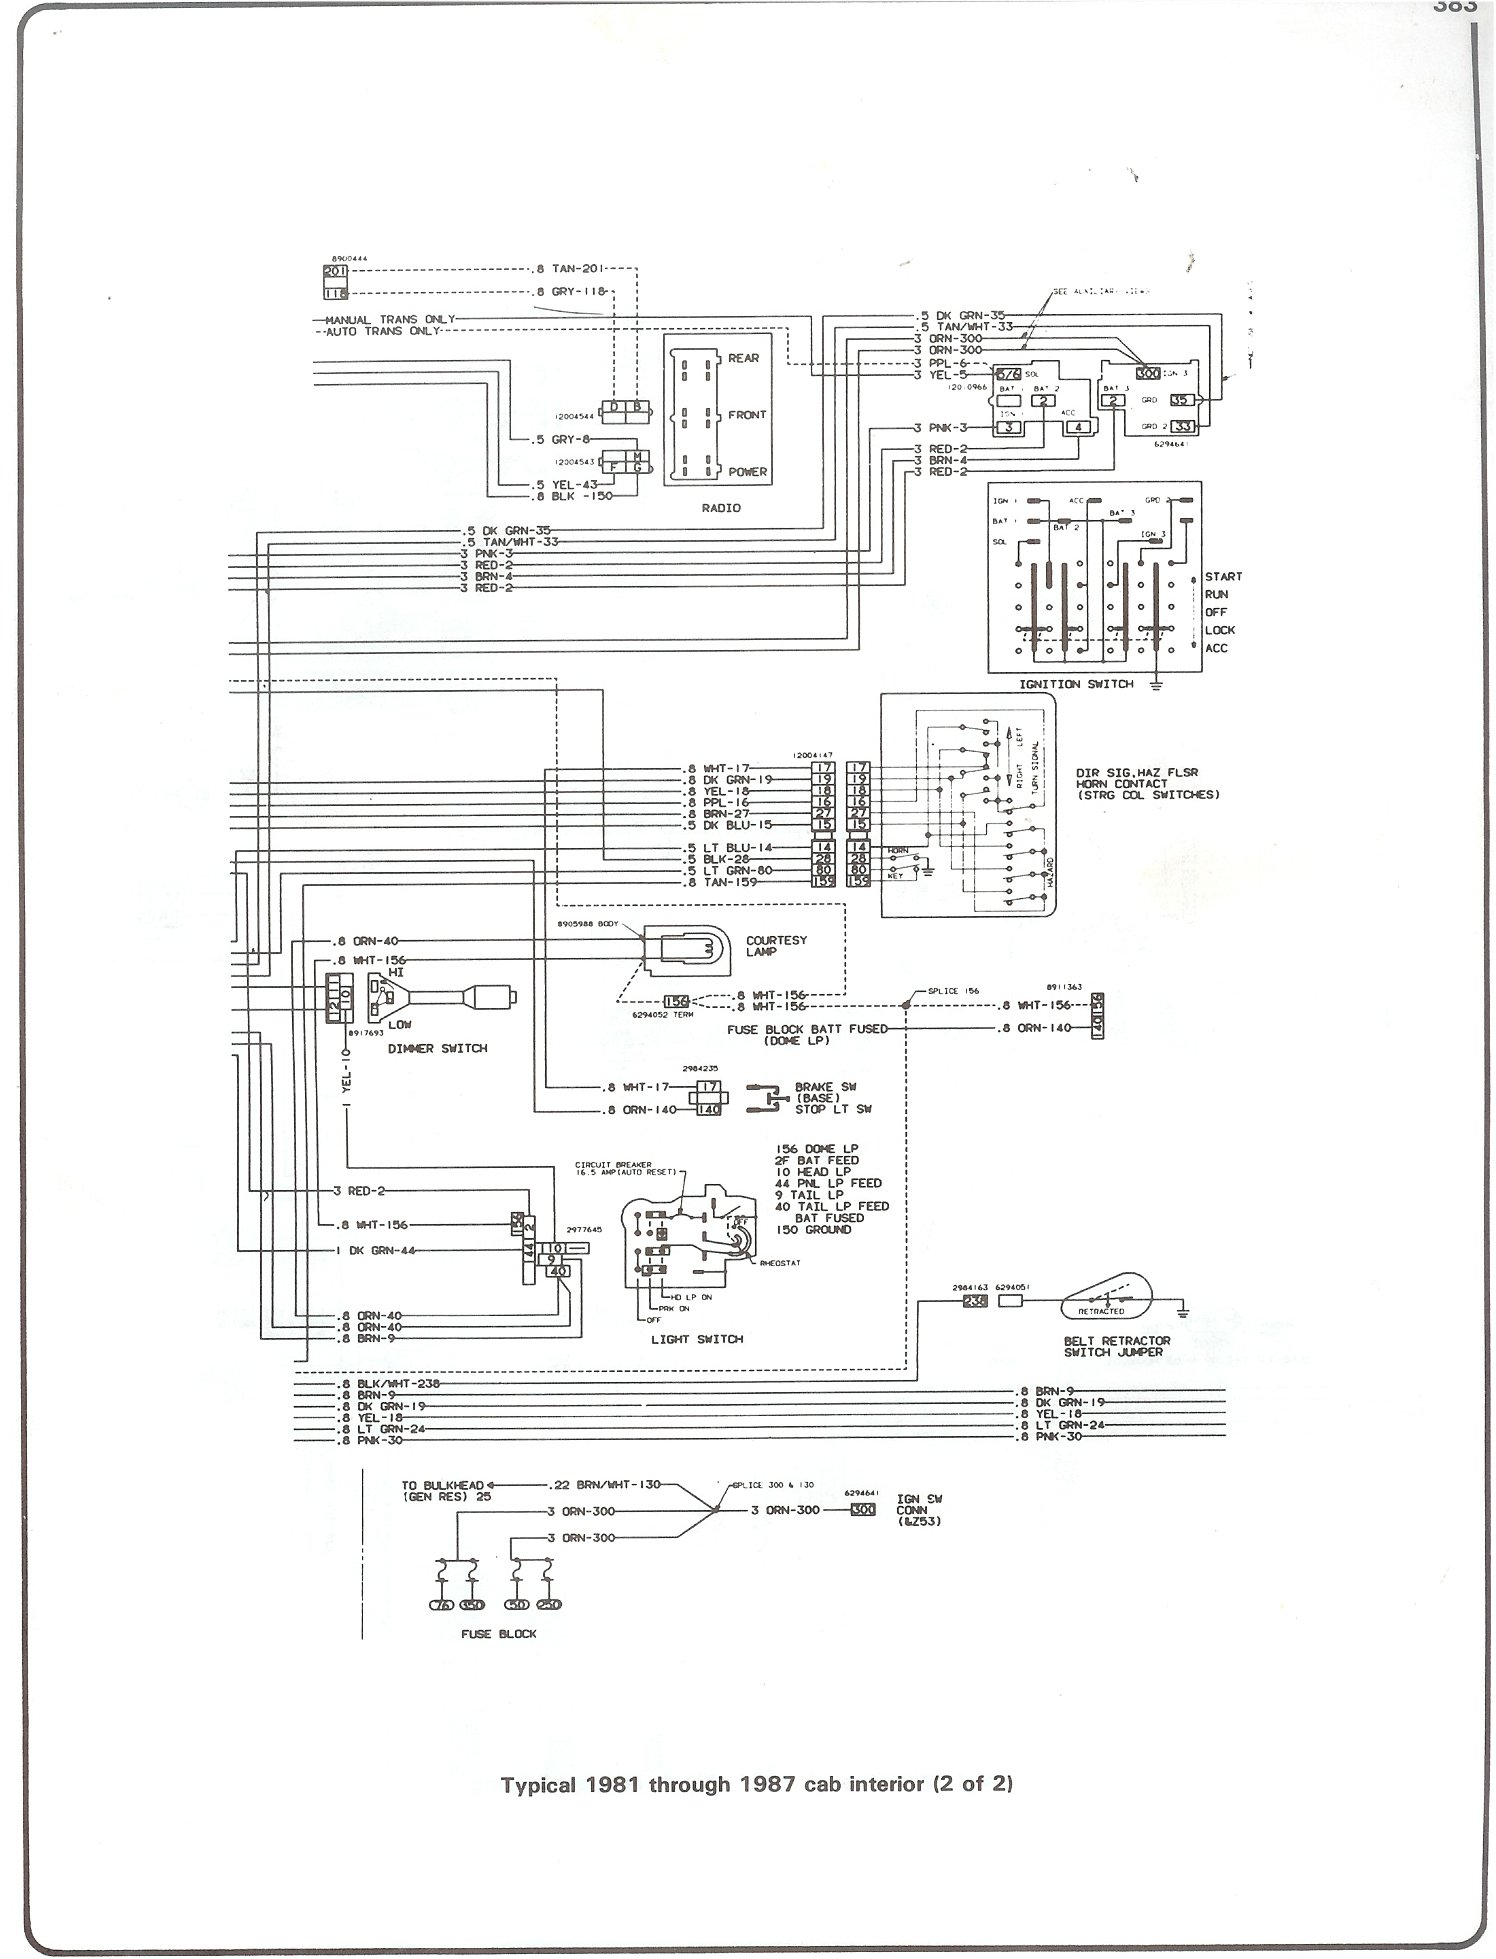 81 87_cab_inter_pg2 complete 73 87 wiring diagrams 1987 chevy wiring diagram at bayanpartner.co